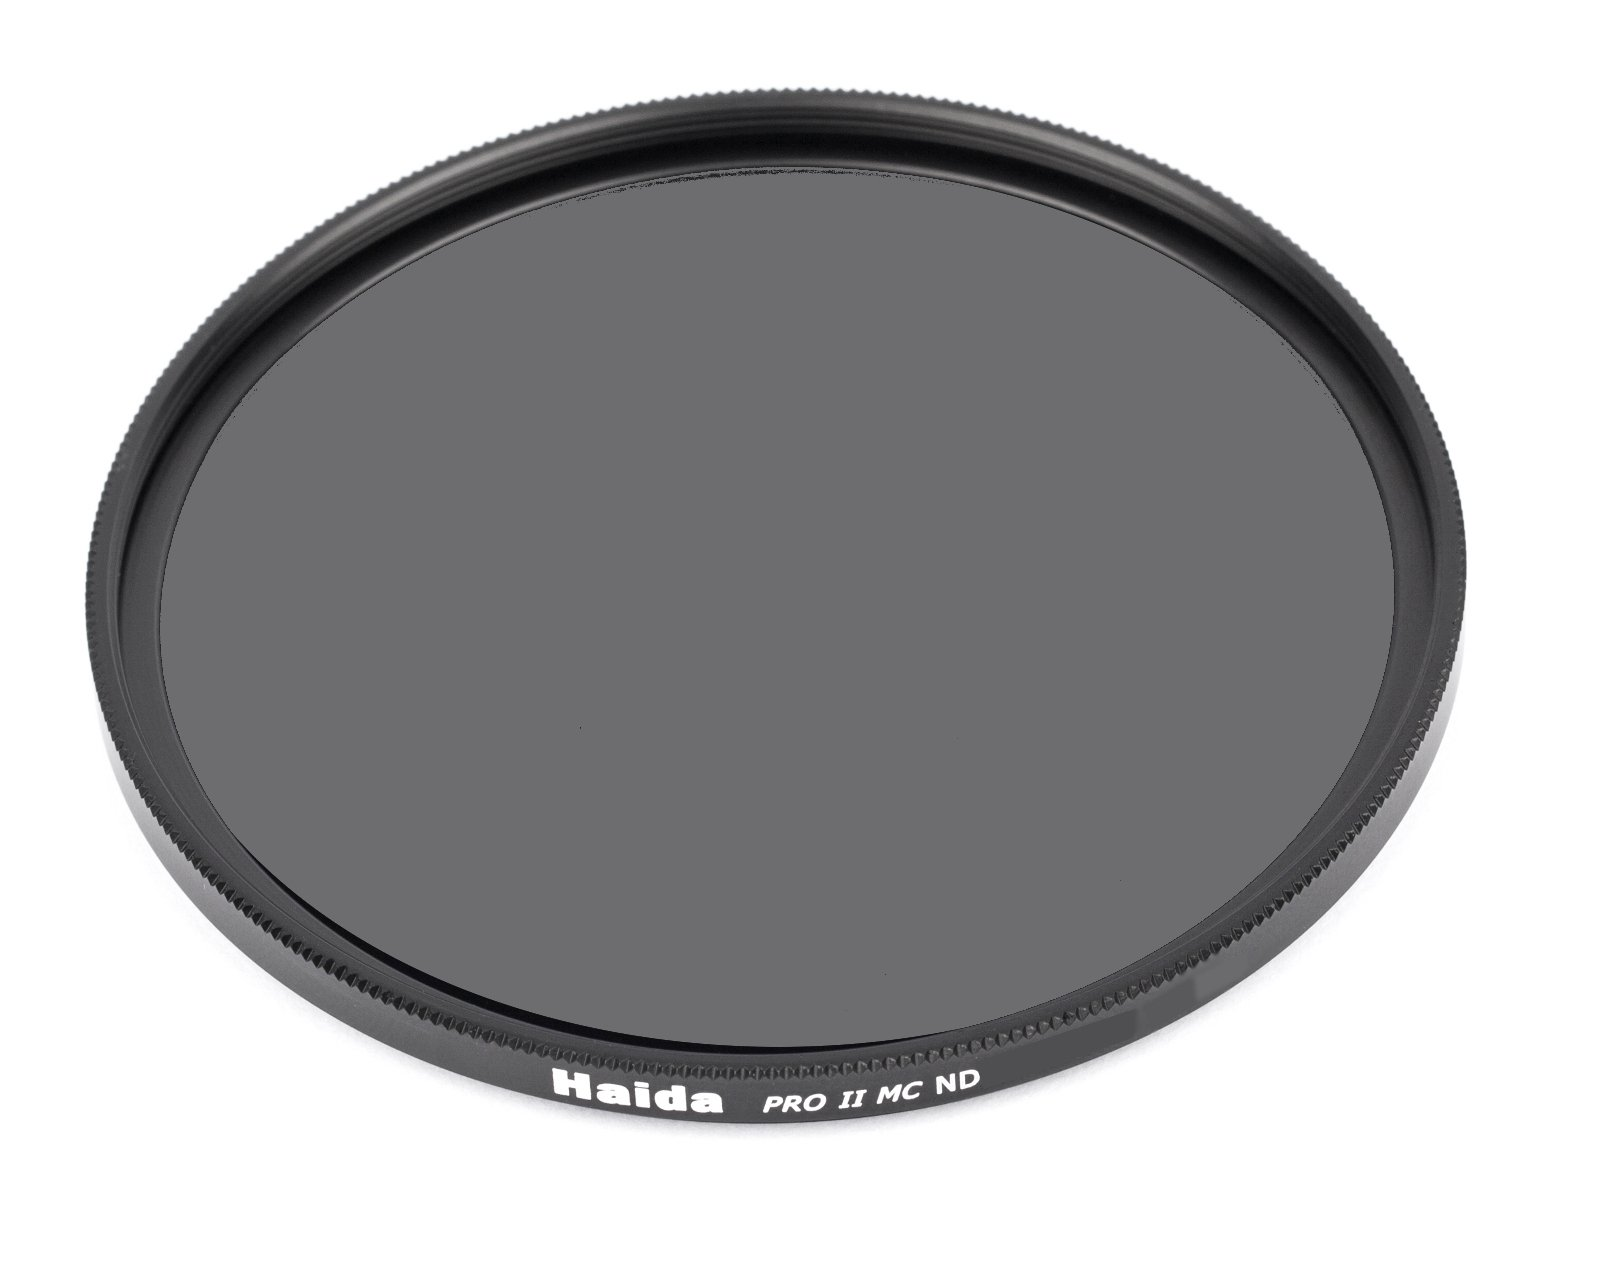 Haida 105mm PRO II Multi-Coated ND4 Filter Neutral Density ND 105 2 Stop 0.6 4x